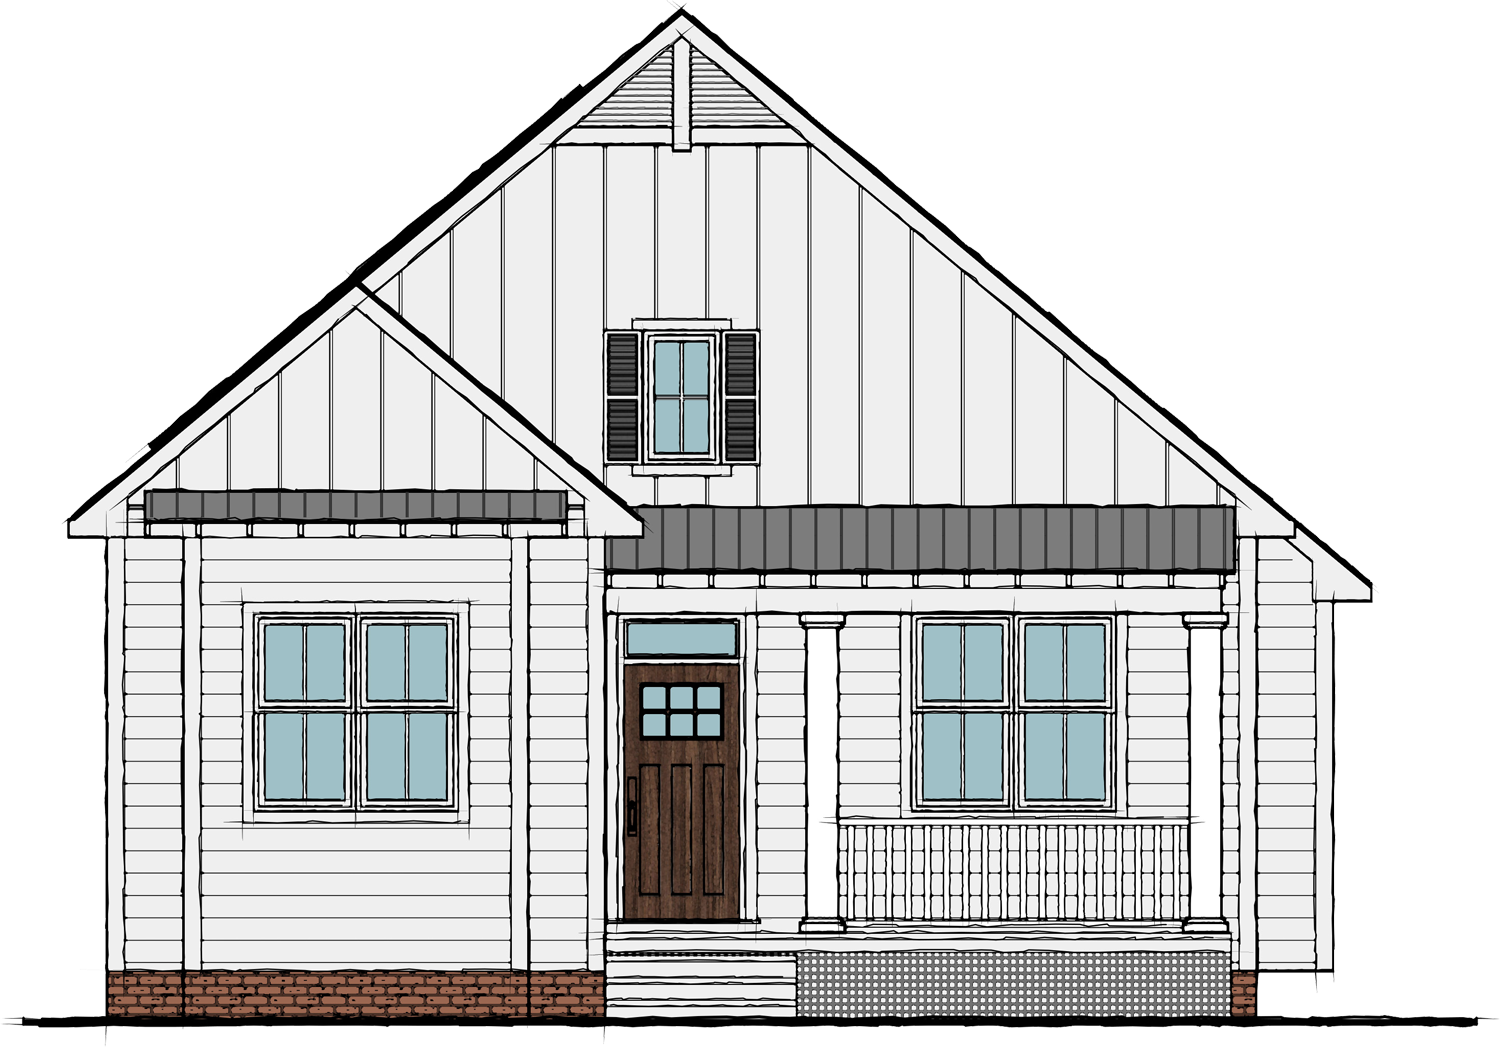 Blueberry - 1350 Sq Ft | 2 Bedroom | 2 BathFeatures include:• Cozy ranch plan with flexible living space, an inviting fireplace, and main-floor bedroom space• Private master retreat located at the rear of the home• Modern kitchen with sunny bay window breakfast nook• Front porch and rear deck